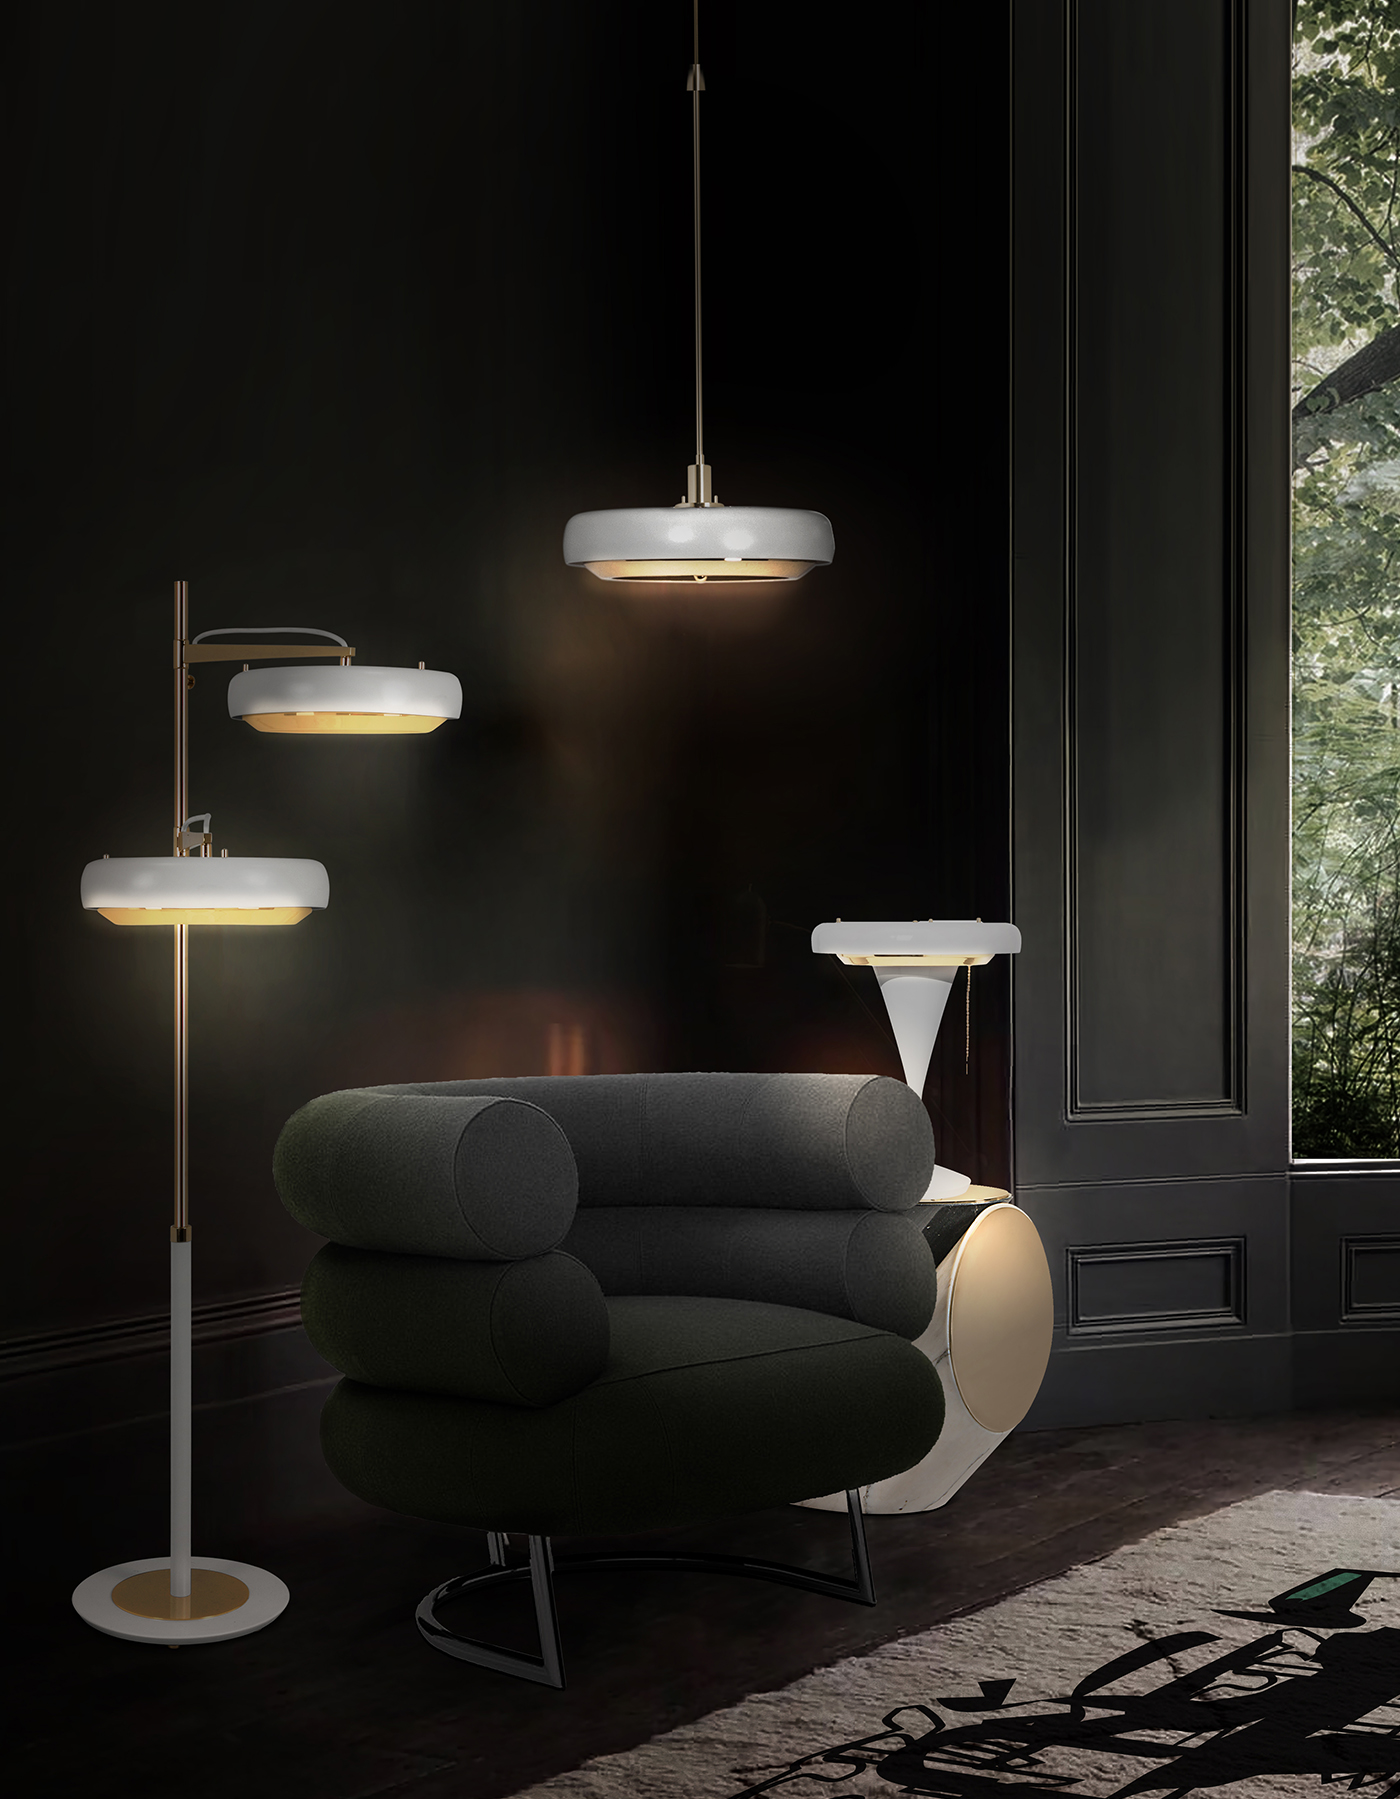 EXCLUSIVE: The New Mid Century Pendant Lamp Everyone Will Talk About! pendant lamp EXCLUSIVE: The New Mid Century Pendant Lamp Everyone Will Talk About! ambiente dl carter pendant